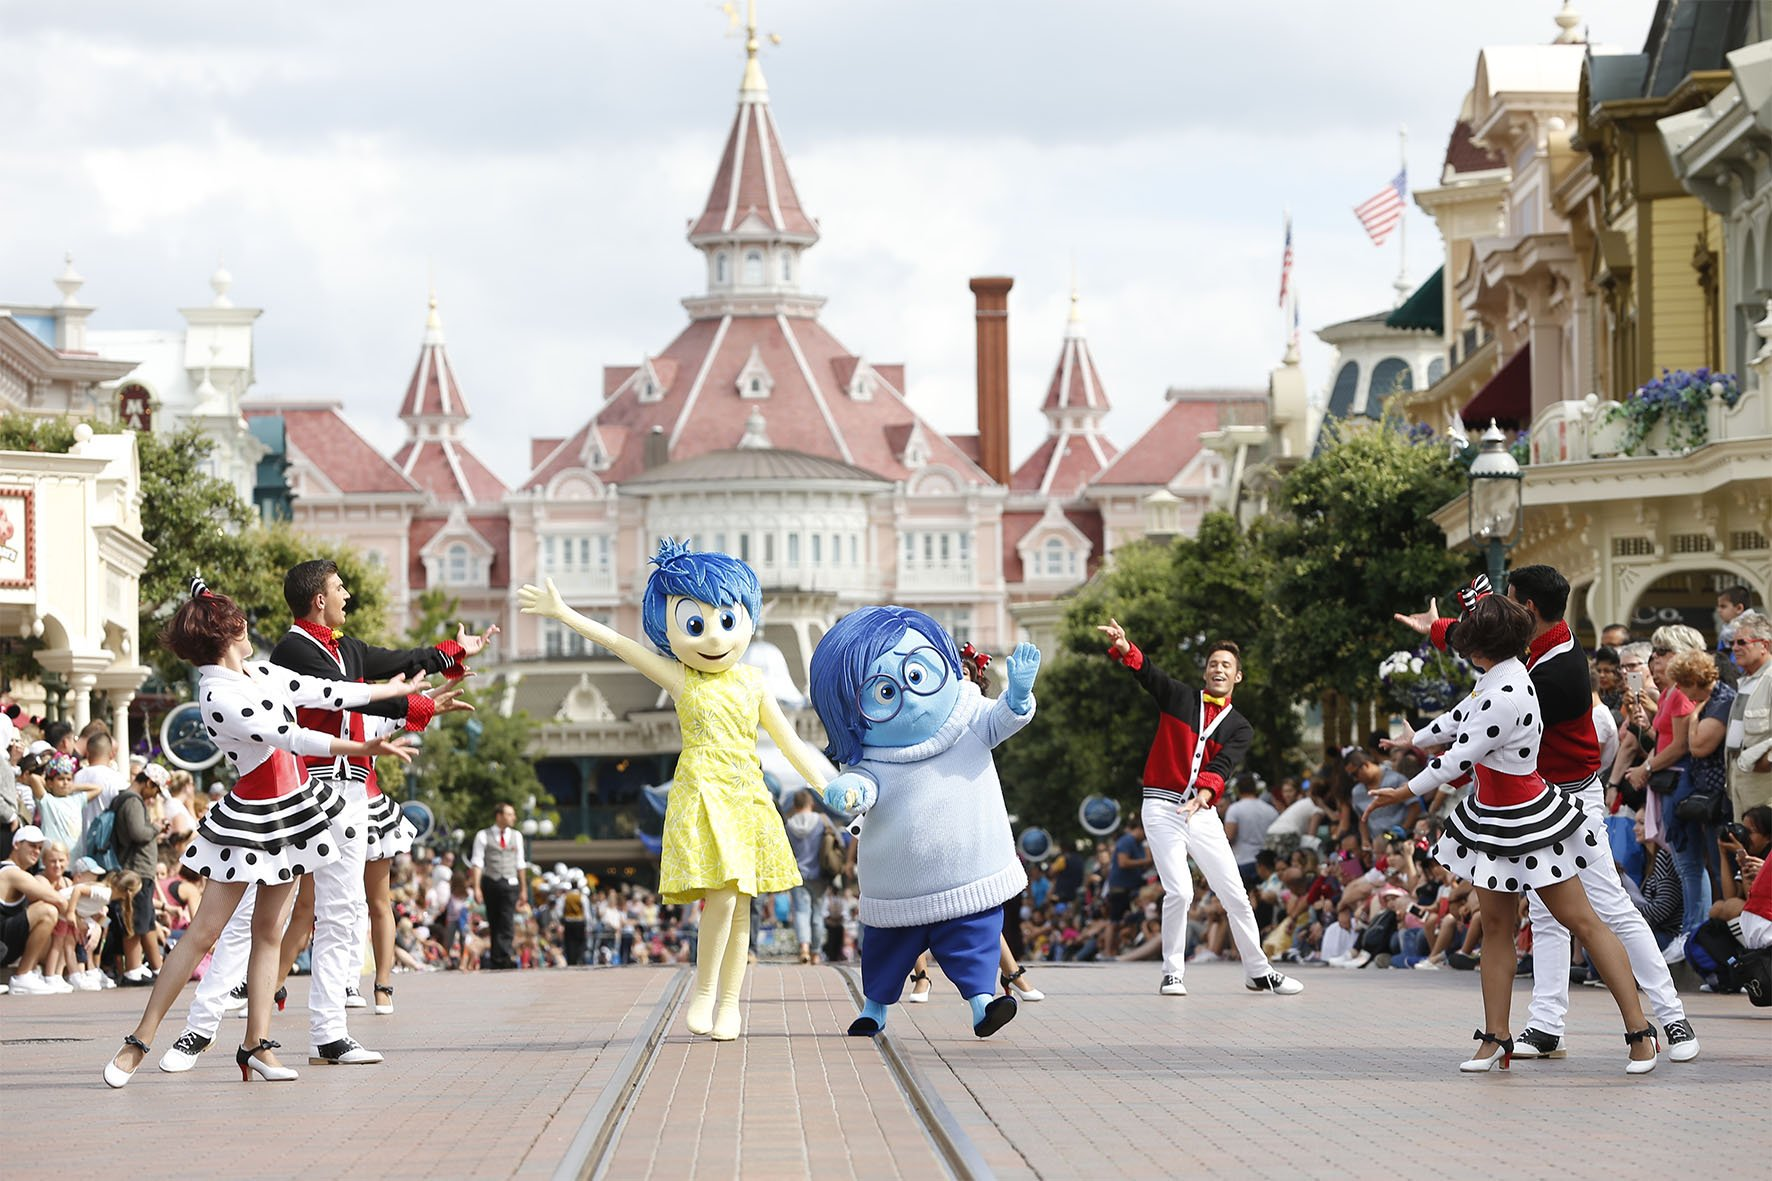 DisneylandParis-TuesdayisaGuestStarDay-JoyandSadness